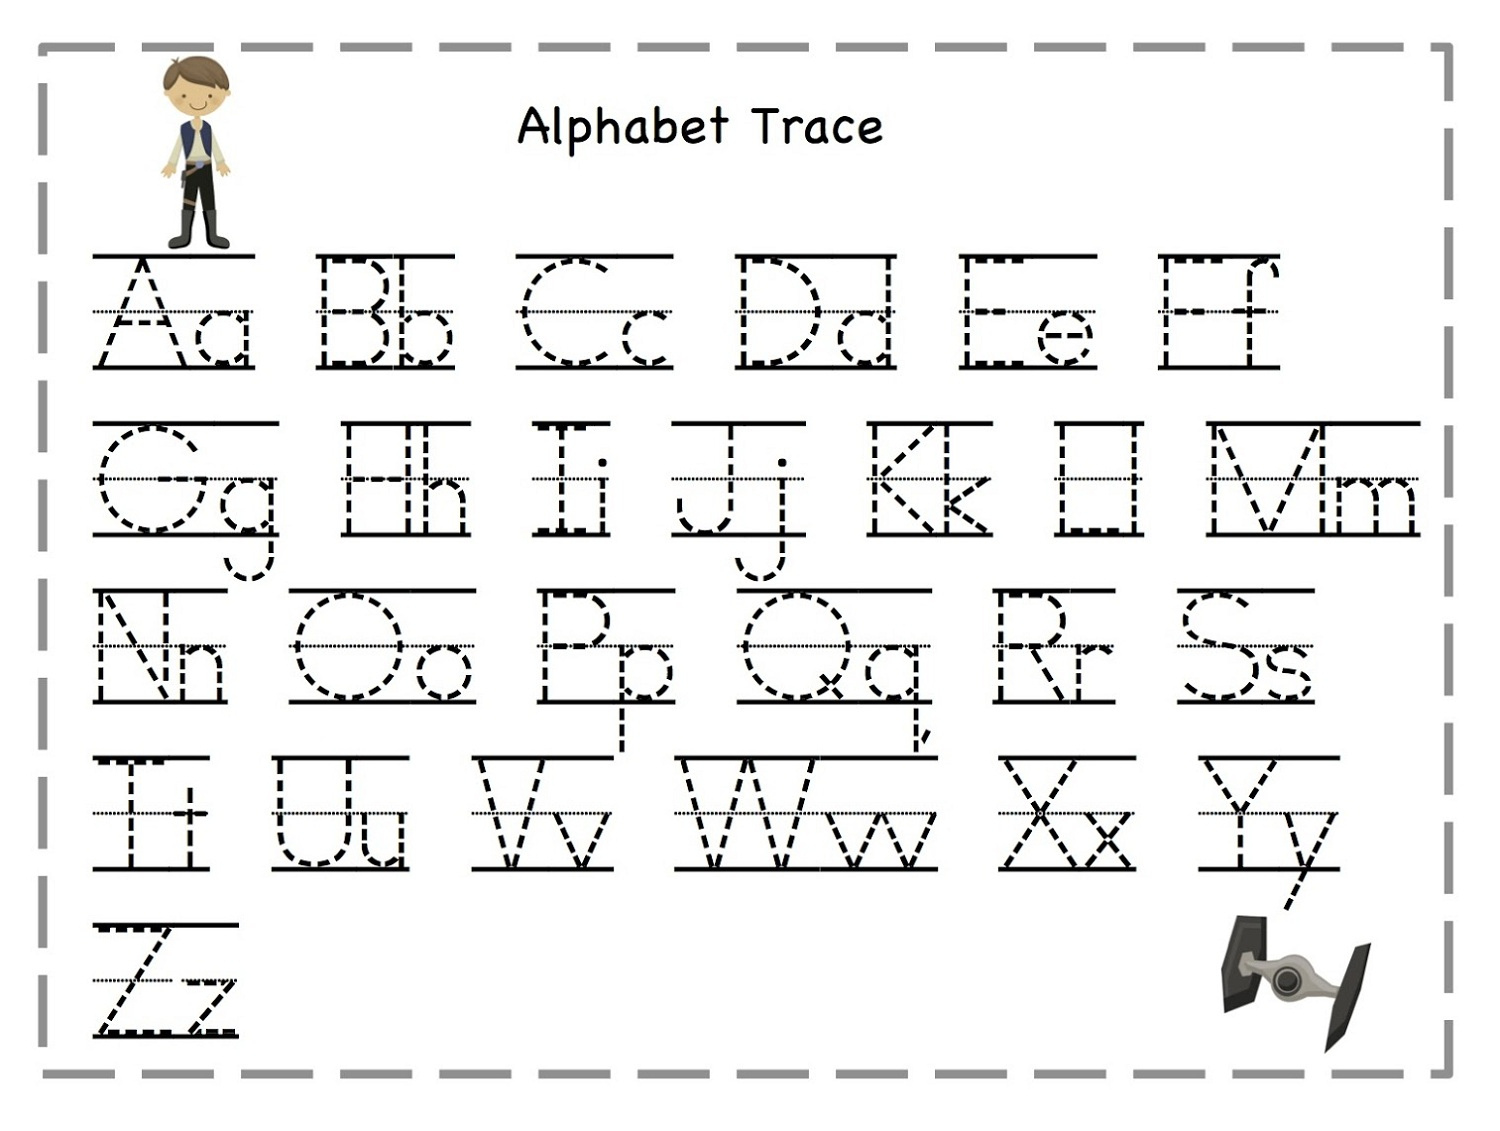 Tracing Letters Worksheet Free Download | Loving Printable for Tracing Numbers And Letters Worksheets